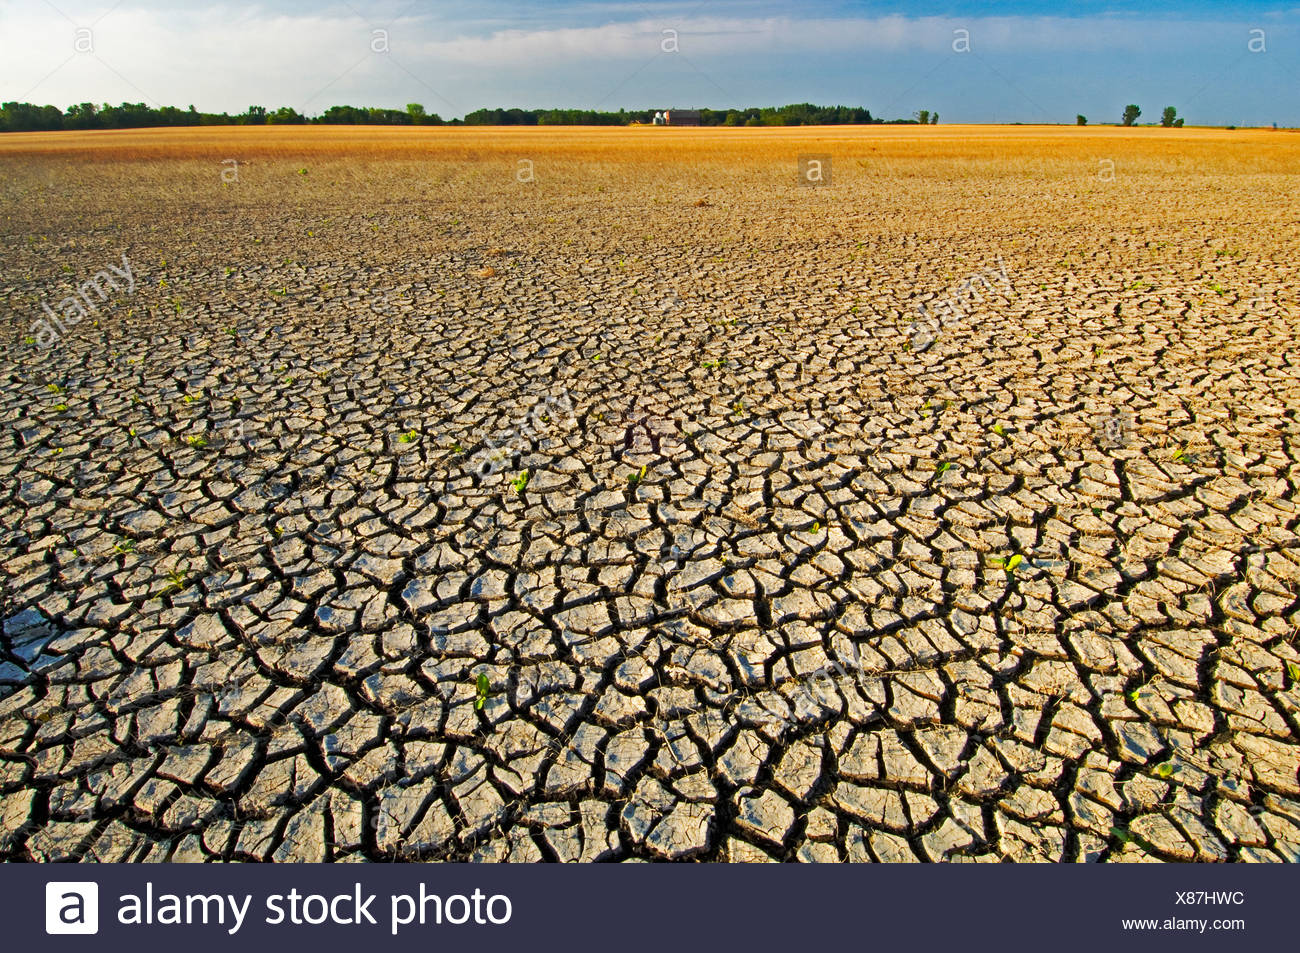 Grain field with cracked mud shows the effects of flooding followed by drought. Reduced grain crop is growing in the background. - Stock Image